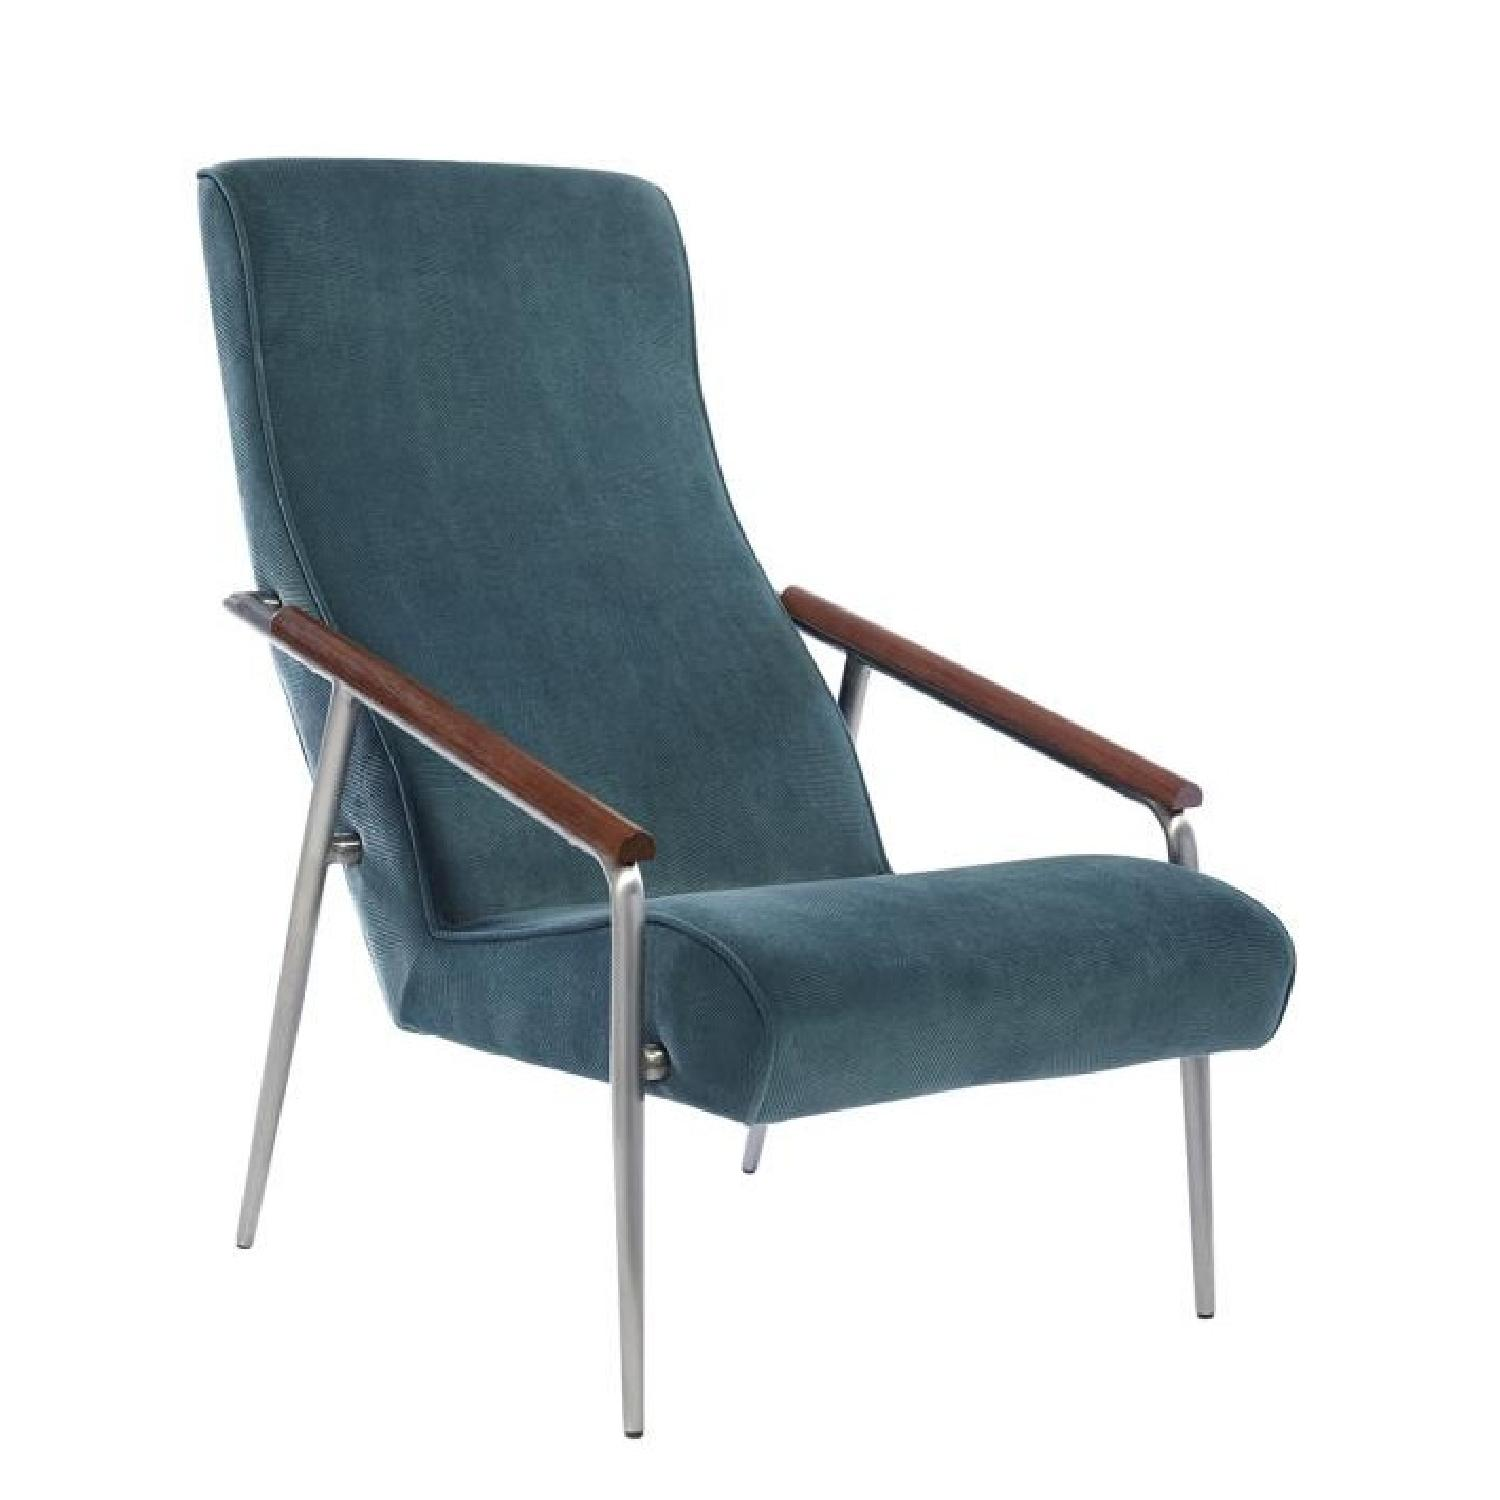 Chic Accent Chair in Teal Velvet Fabric - image-0